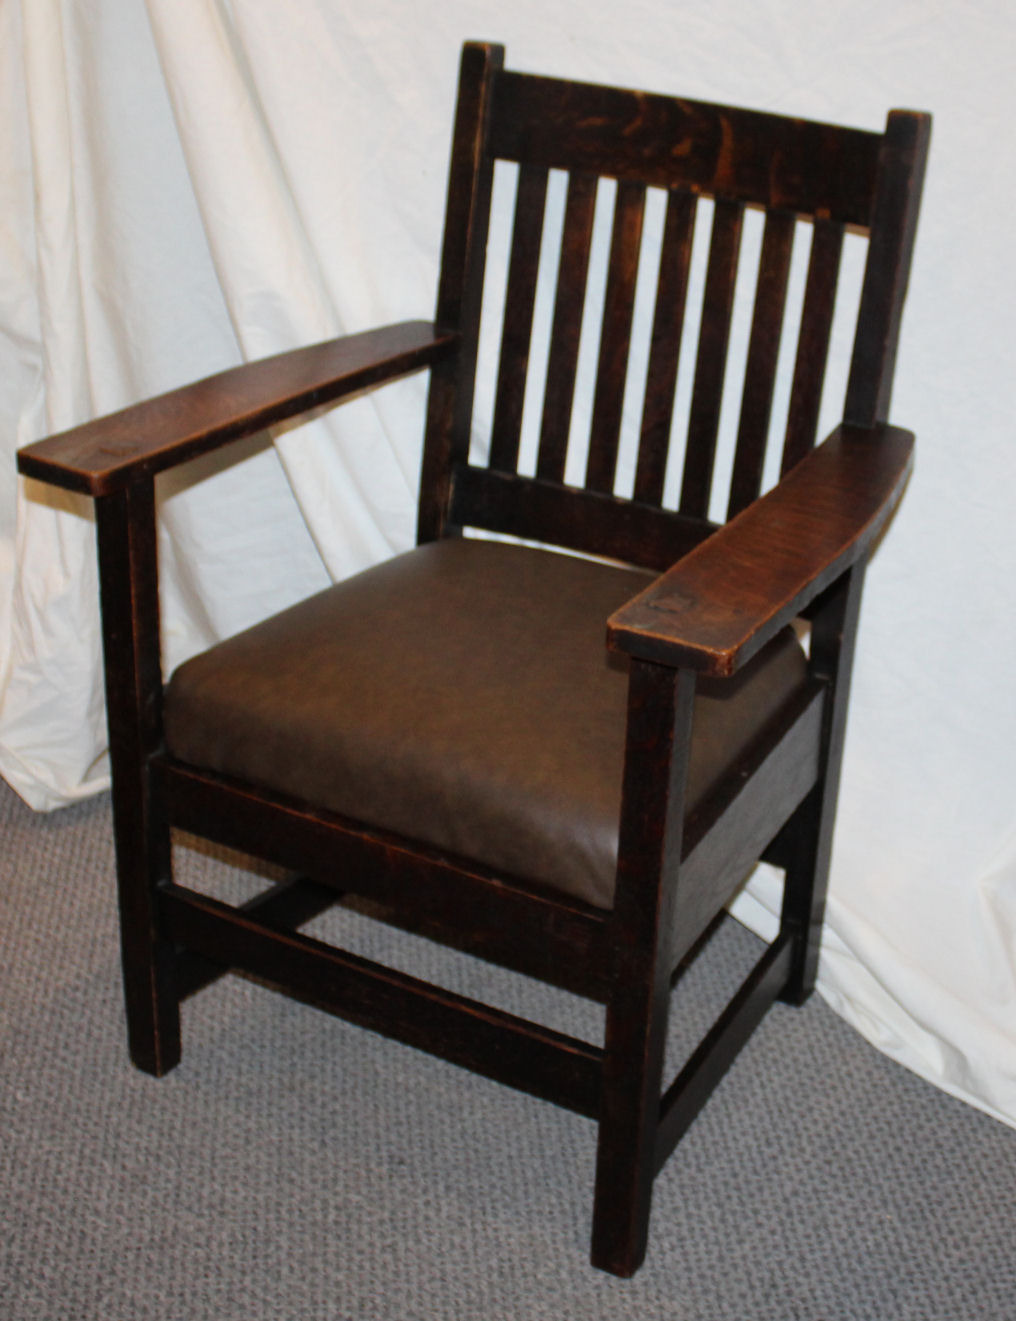 Antique Mission Style Furniture Best Of Antique Mission Oak Armed Chair Arts and Crafts Style